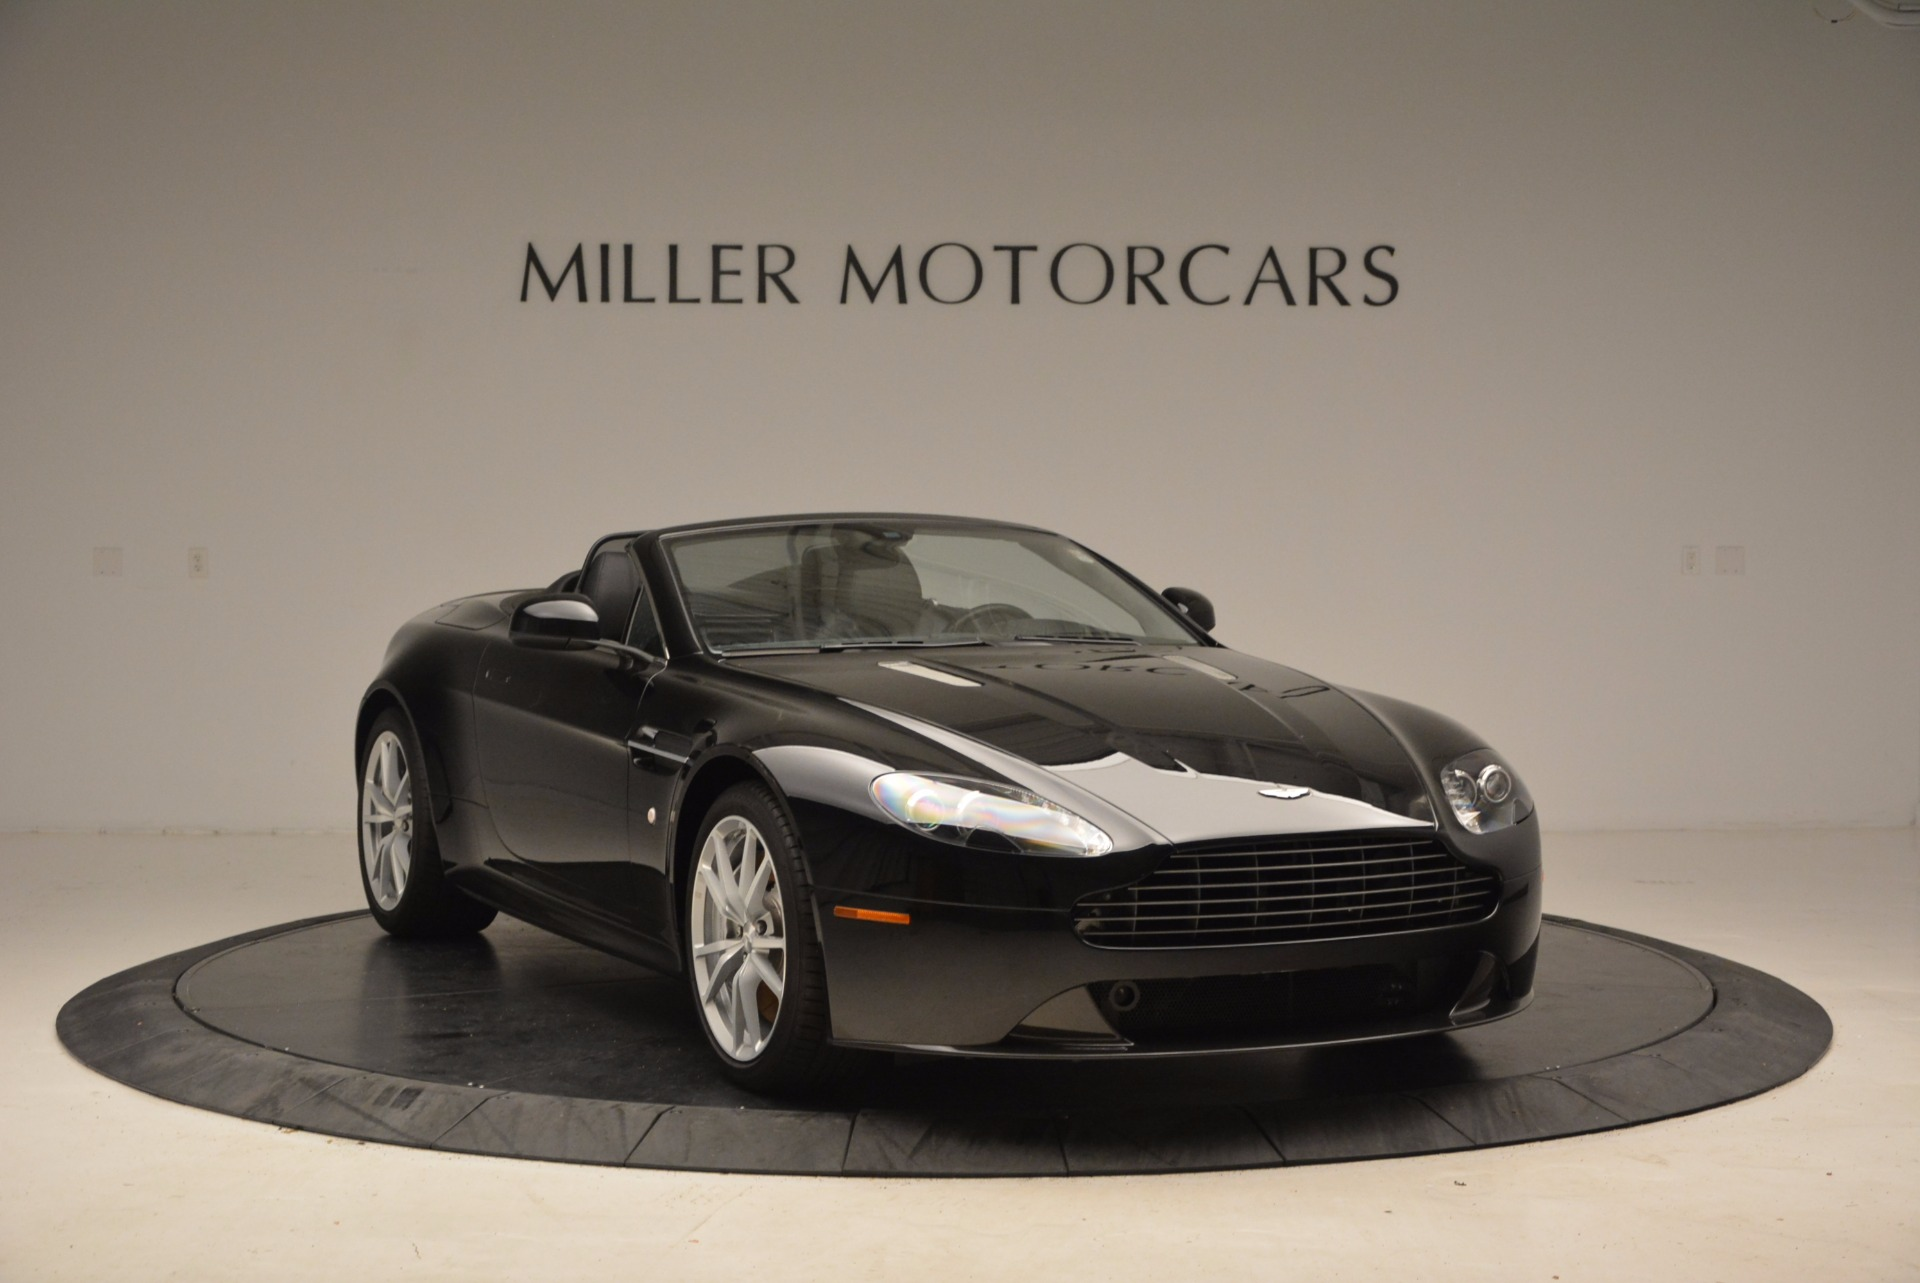 New 2016 Aston Martin V8 Vantage Roadster For Sale In Greenwich, CT 1546_p11